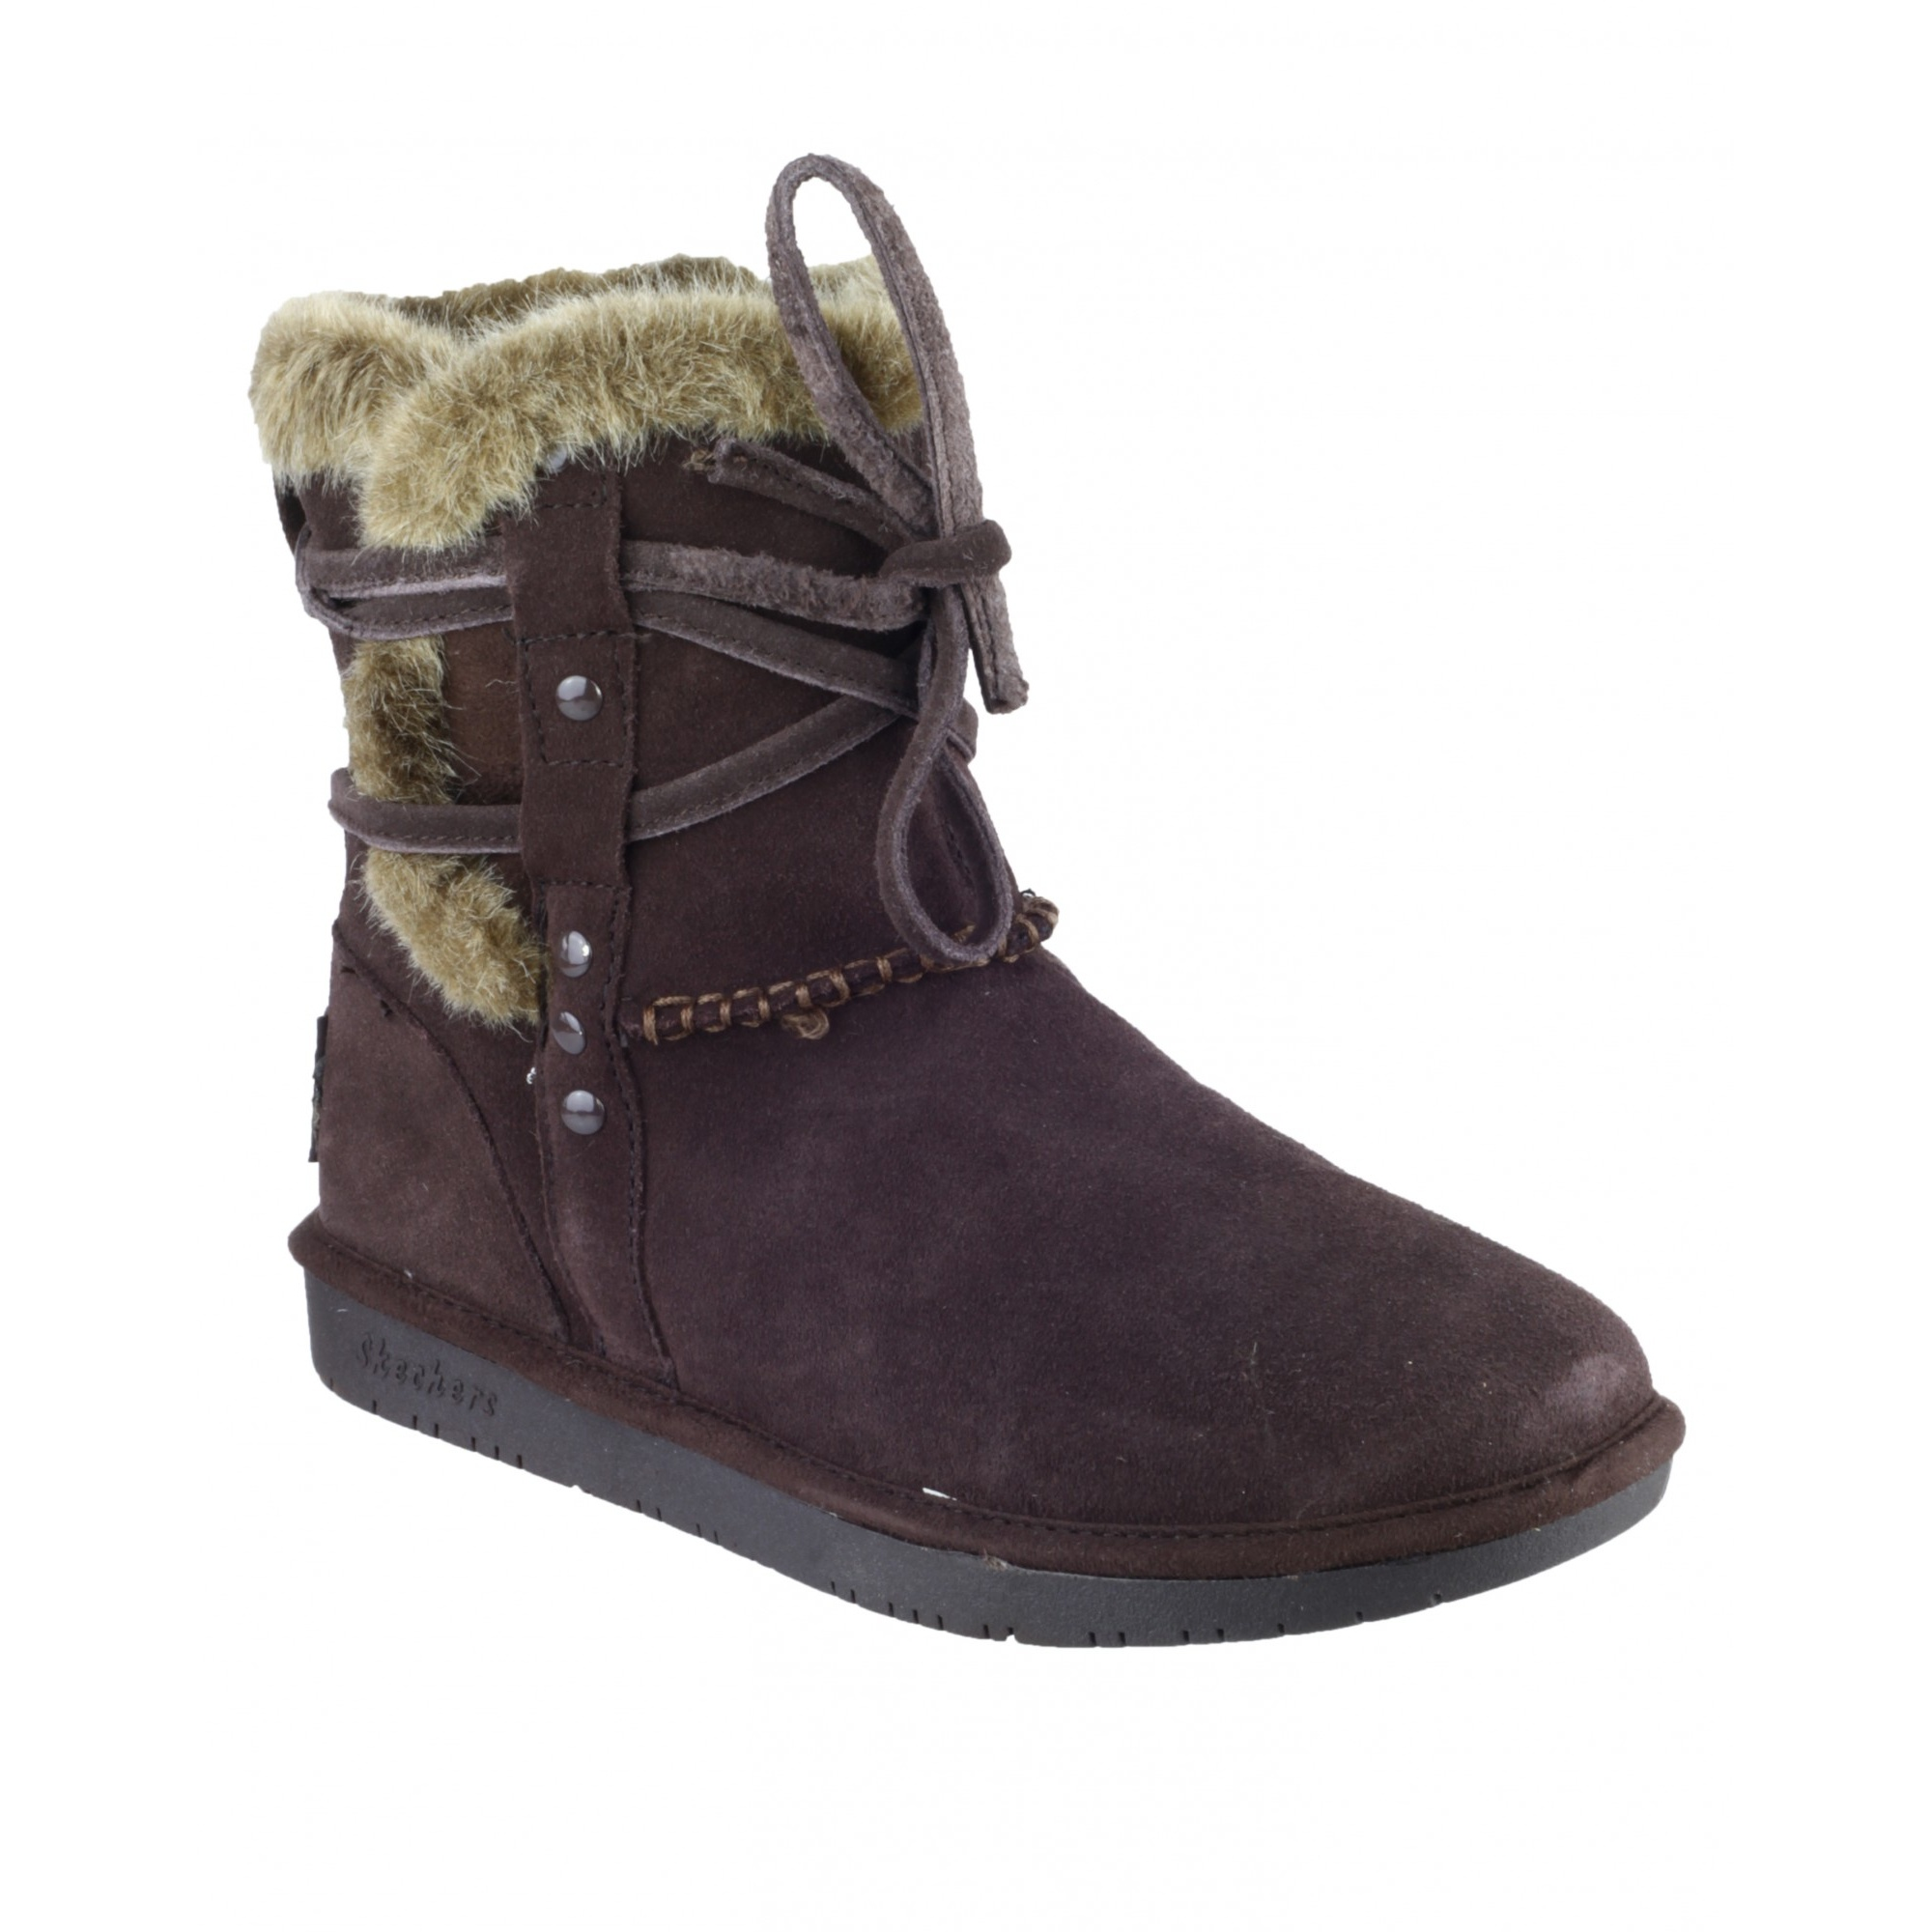 skechers sk48005 boot womens winter boots ebay